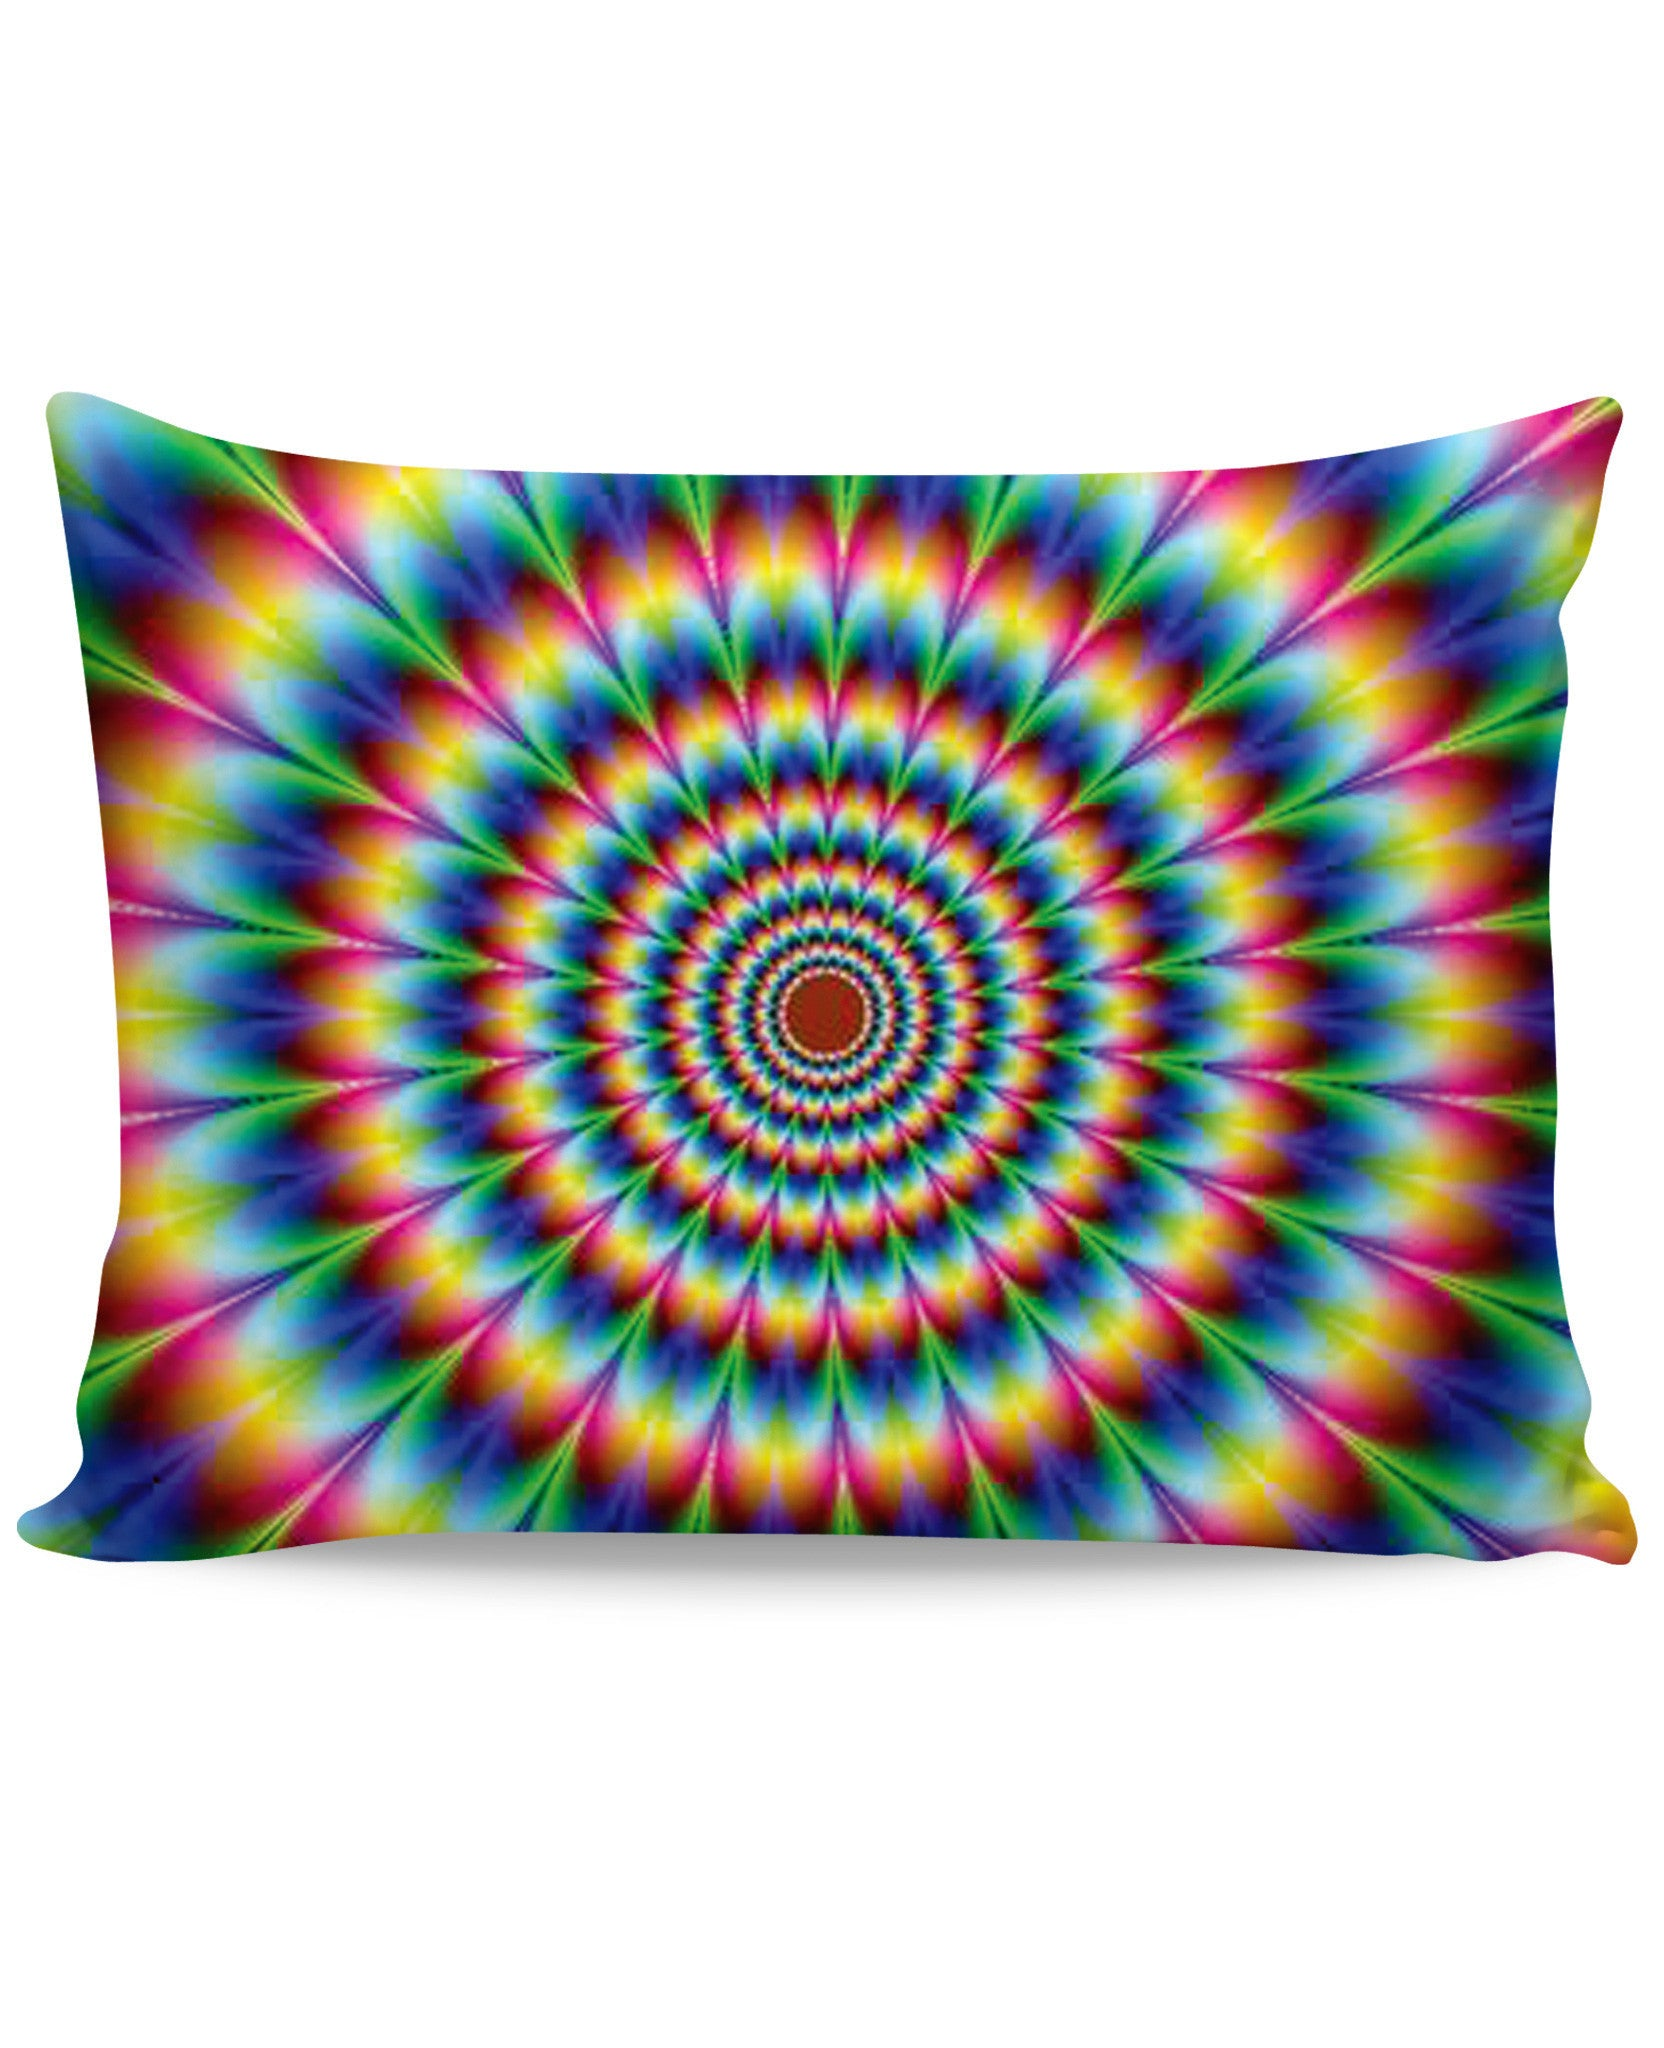 Into the Rainbow Pillow Case